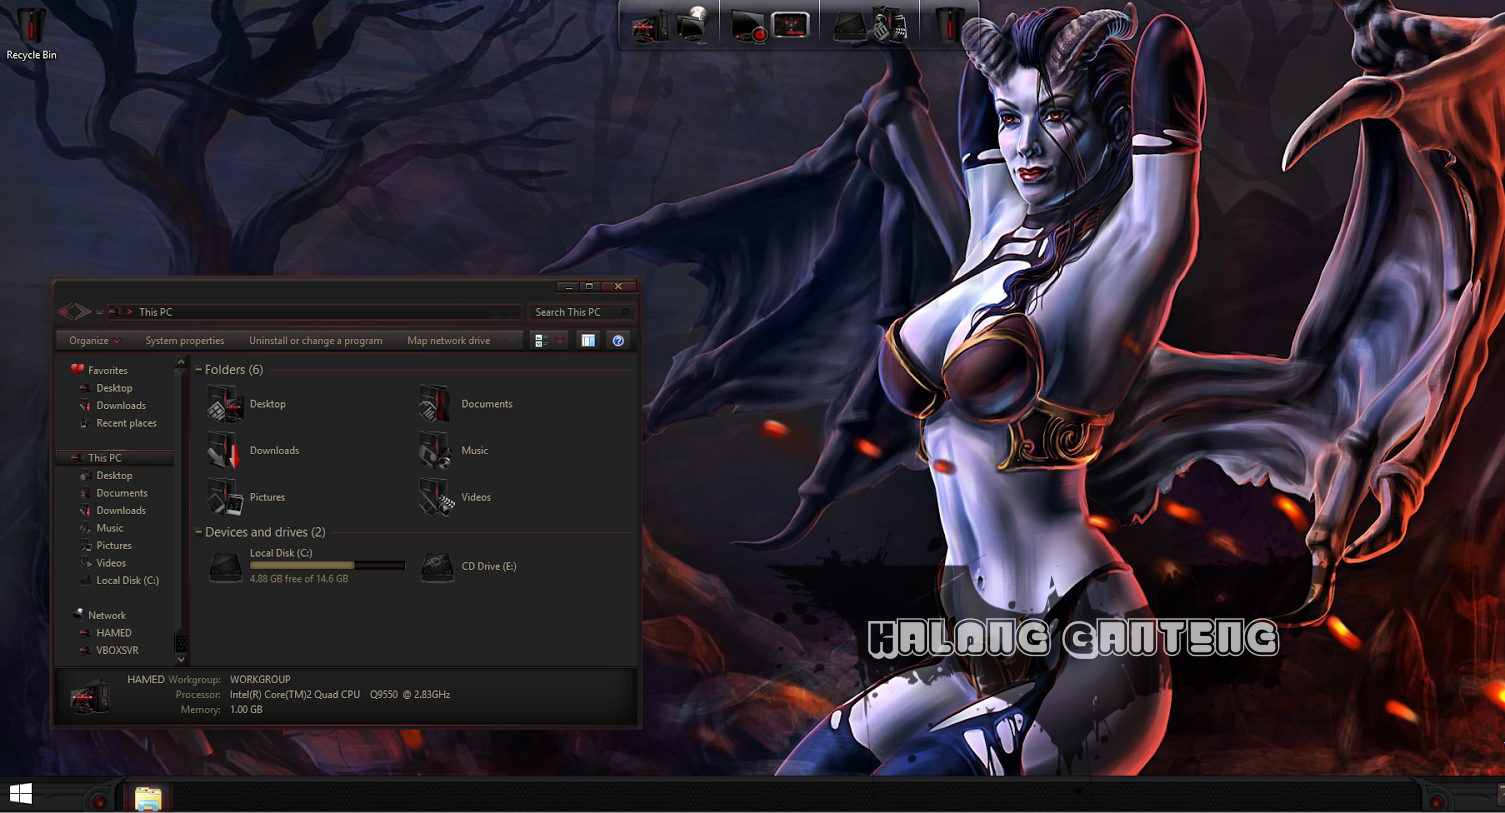 DOTA2 SkinPack Screenshot windows 8/8.1